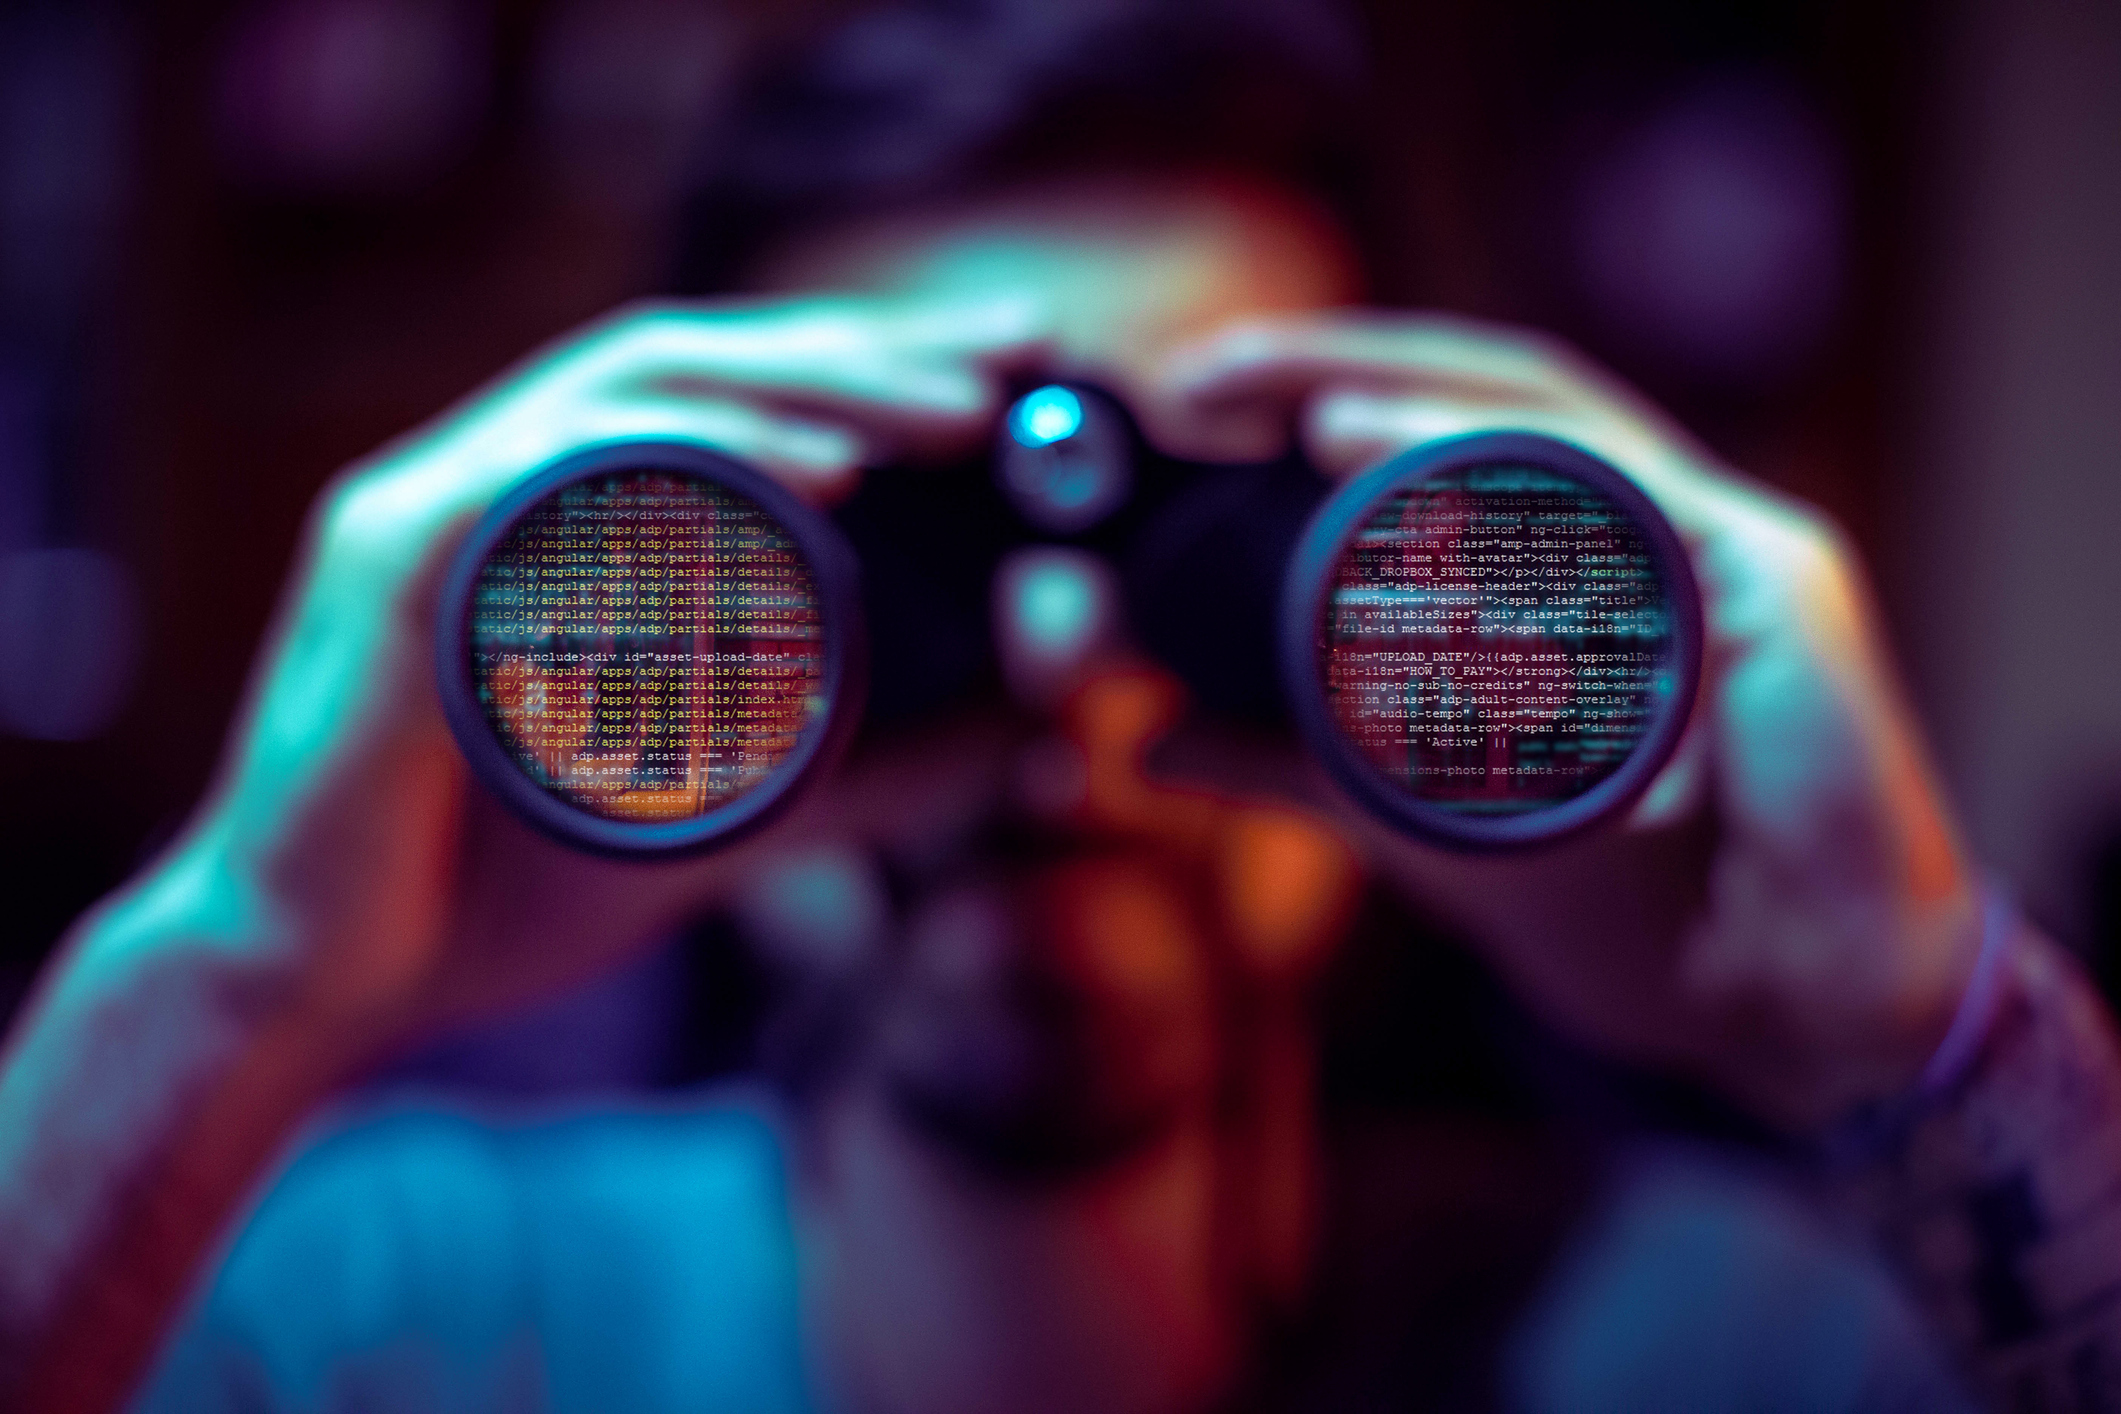 Are Employers or Attackers Spying on Your Internet Activity?